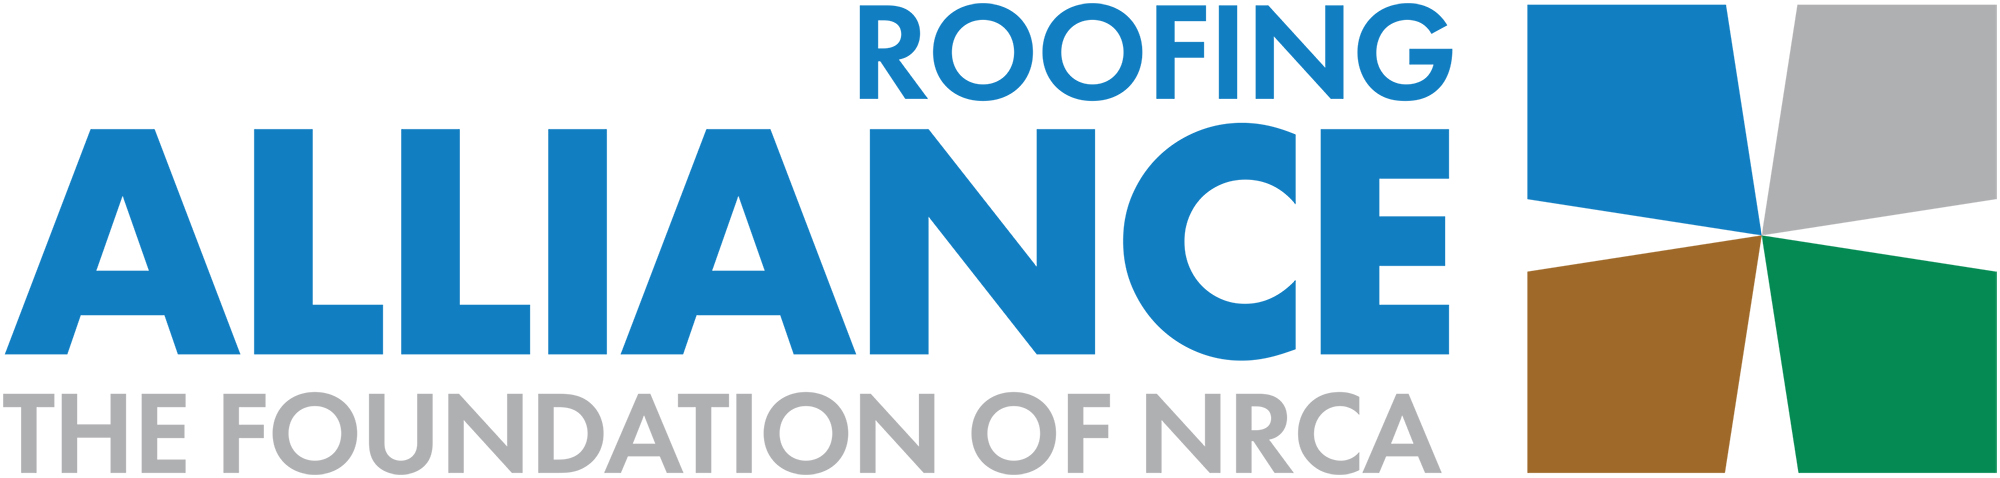 Roofing Alliance logo 2018